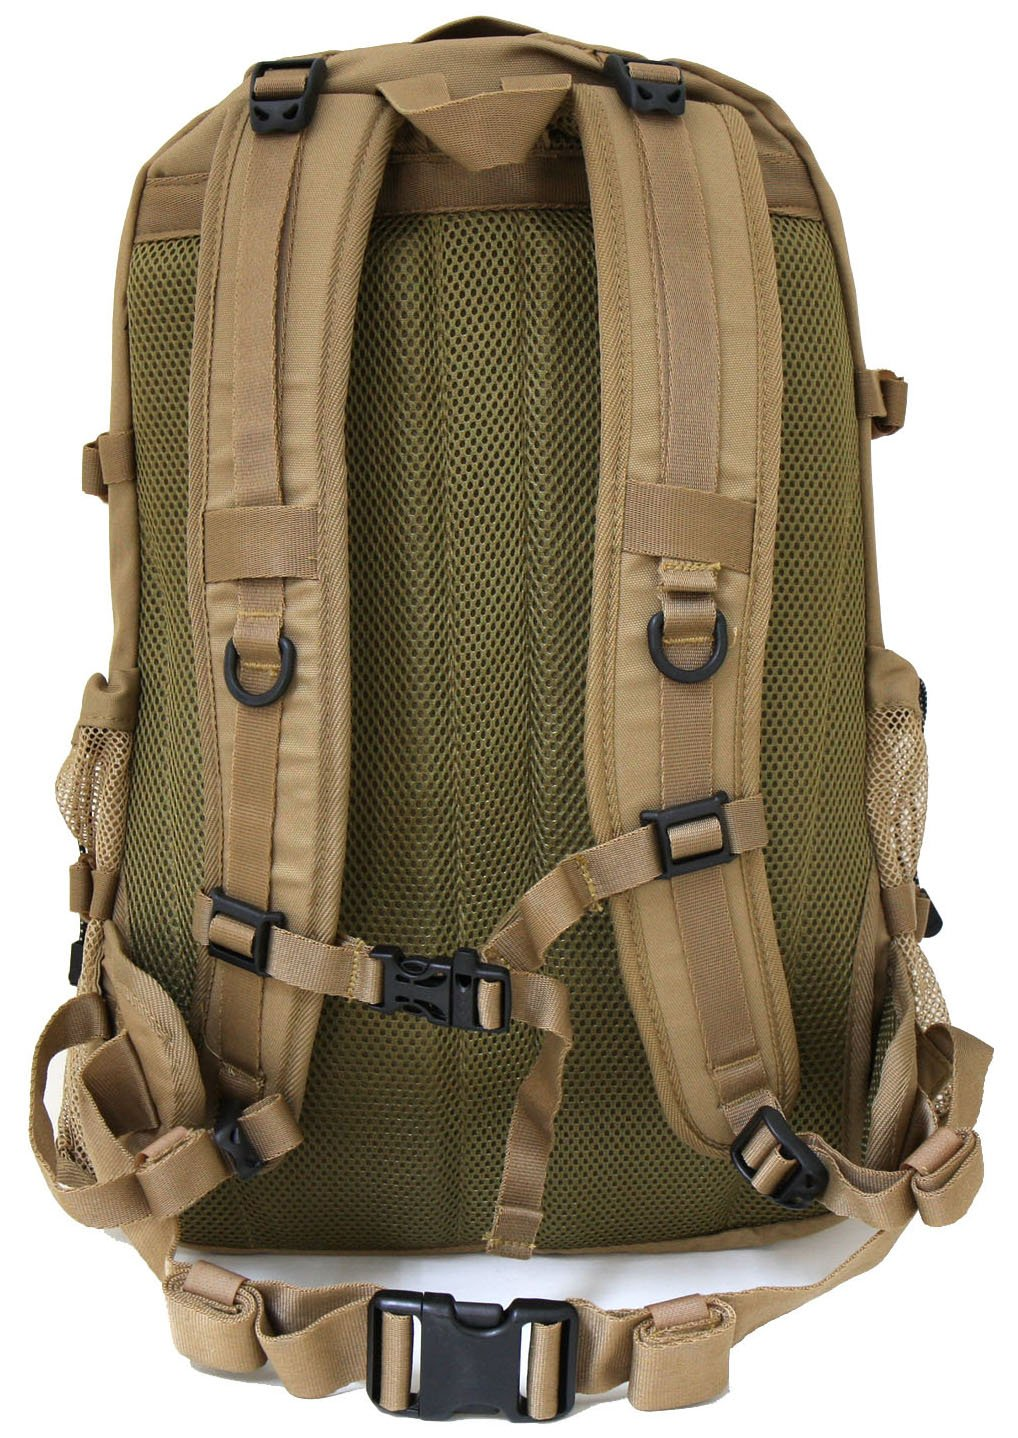 Snugpak Xocet 35 Backpack, Coyote Tan